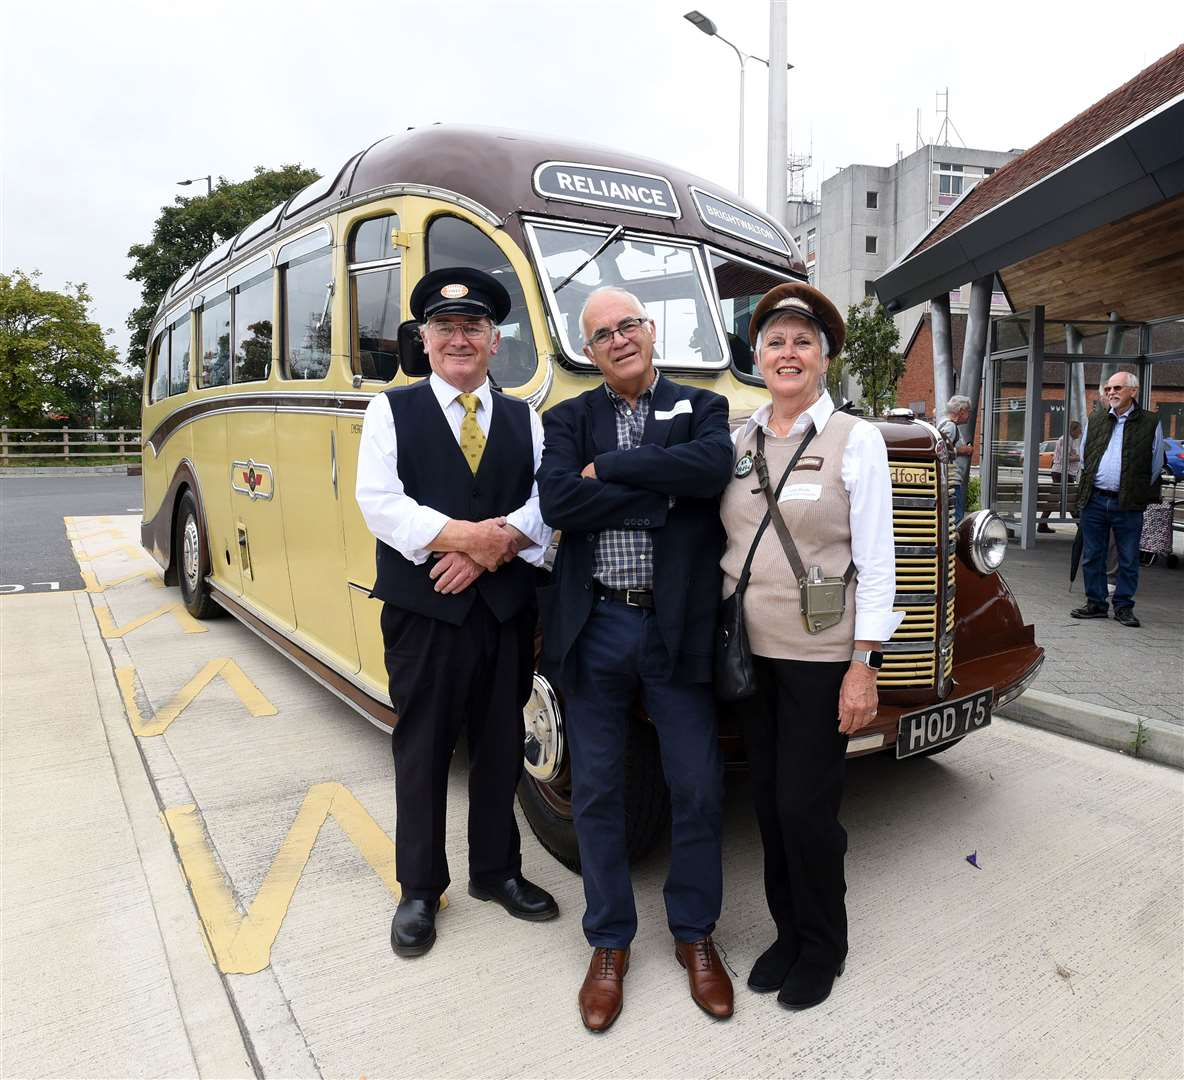 Barrie Hedges with conductor Judith Munday and pilot Mervyn Annetts